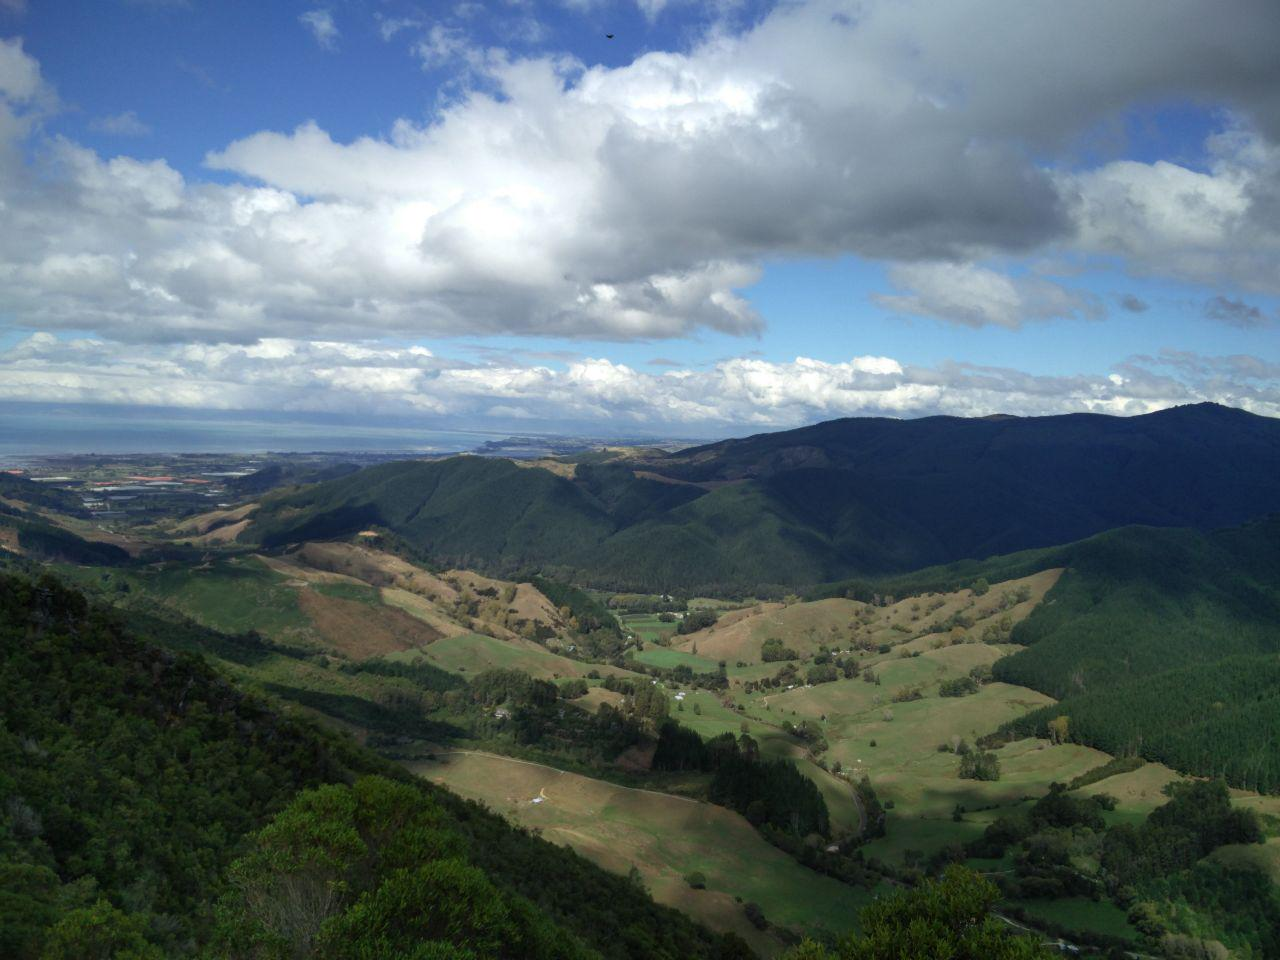 A view from outside of Nelson, New Zealand